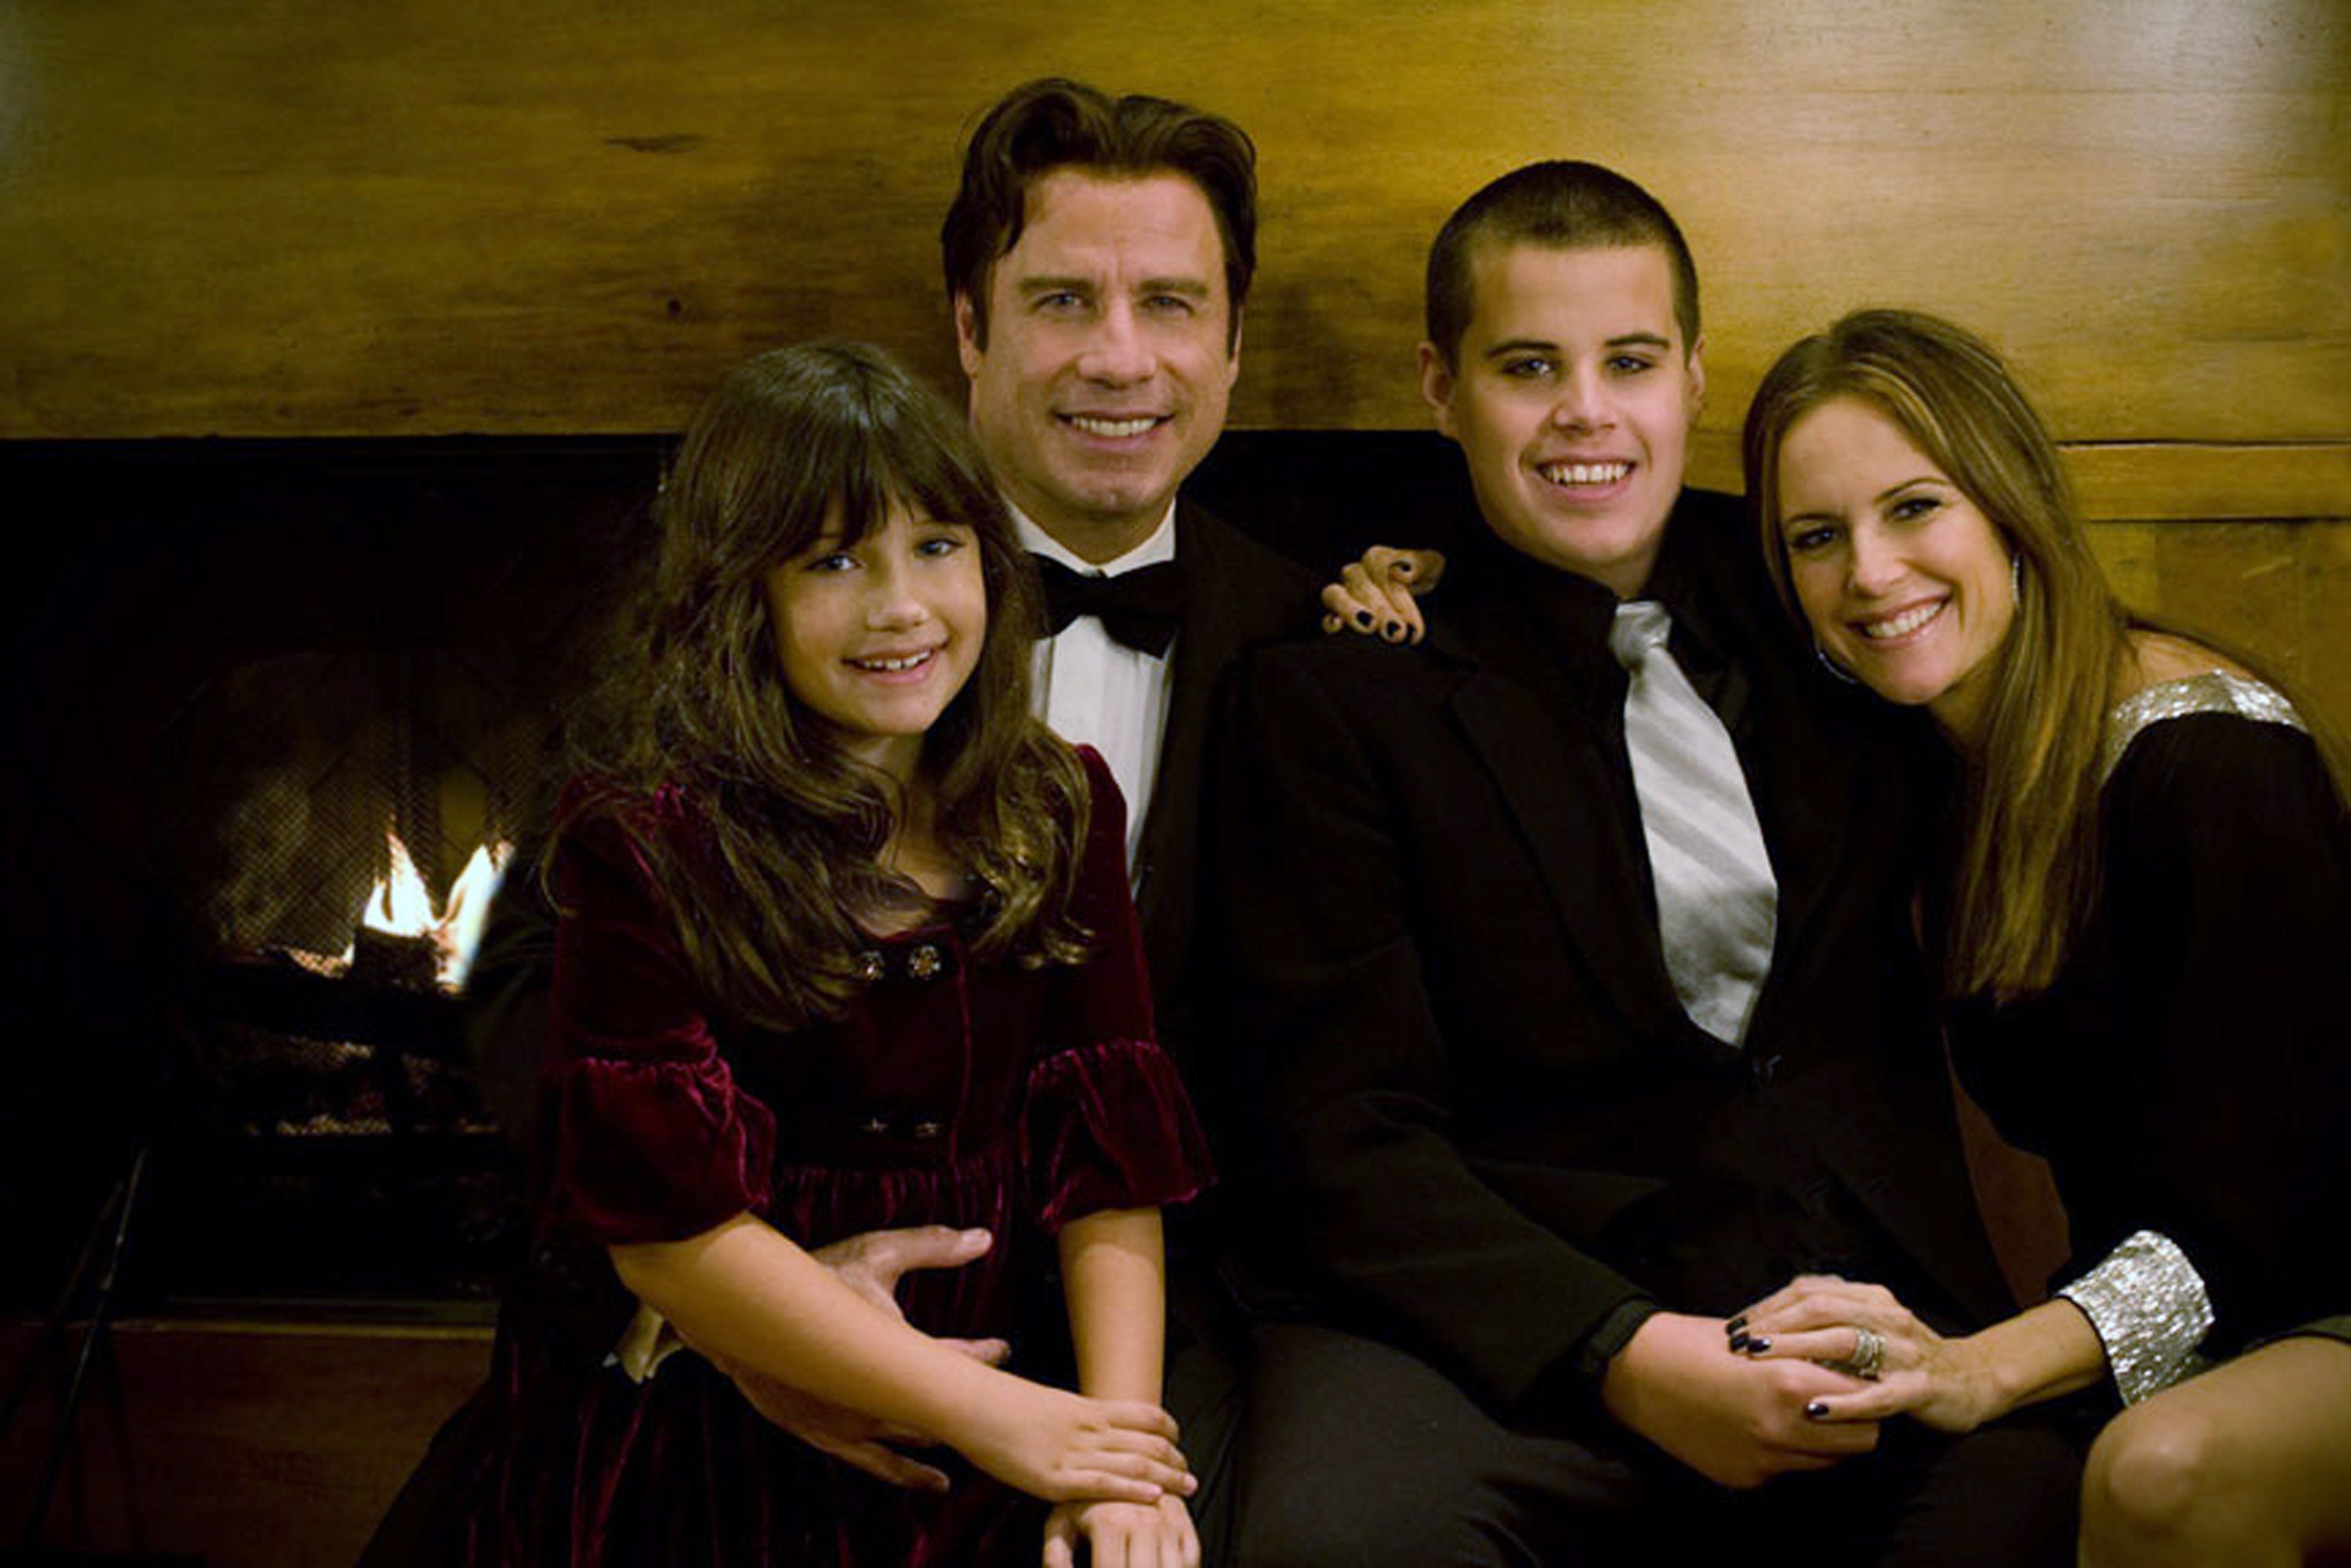 John Travolta and Kelly Preston and their children Jett and Ella Bleu | Source: Getty Images